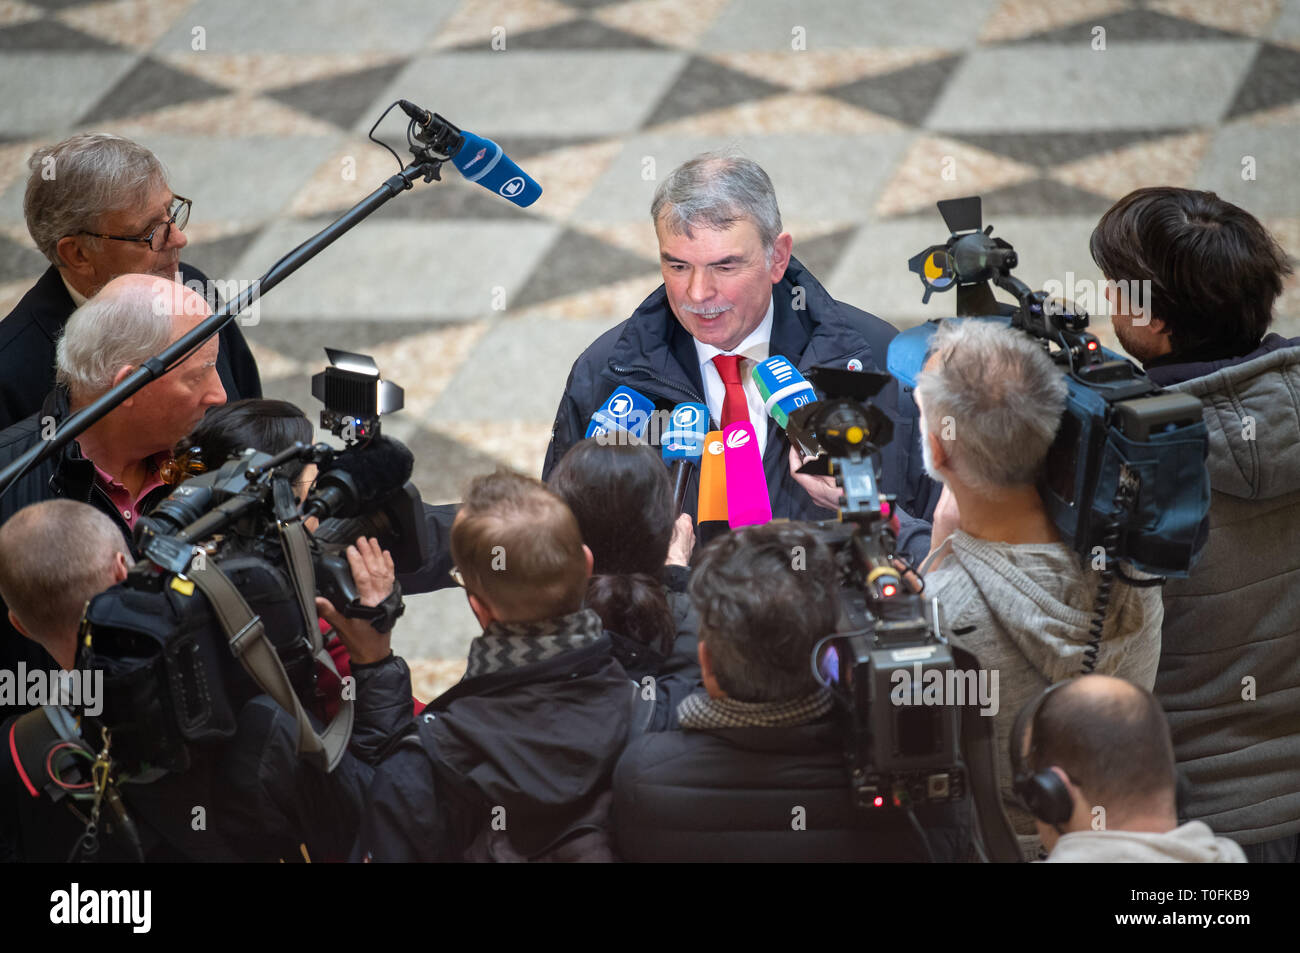 20 March 2019, Bavaria, München: The plaintiff Gustl Mollath talks to the journalists present before the trial begins. In the trial, Mollath demands about 1.8 million euros from the Free State of Bavaria for his unjustified placement in a psychiatric institution. Photo: Peter Kneffel/dpa - Stock Image